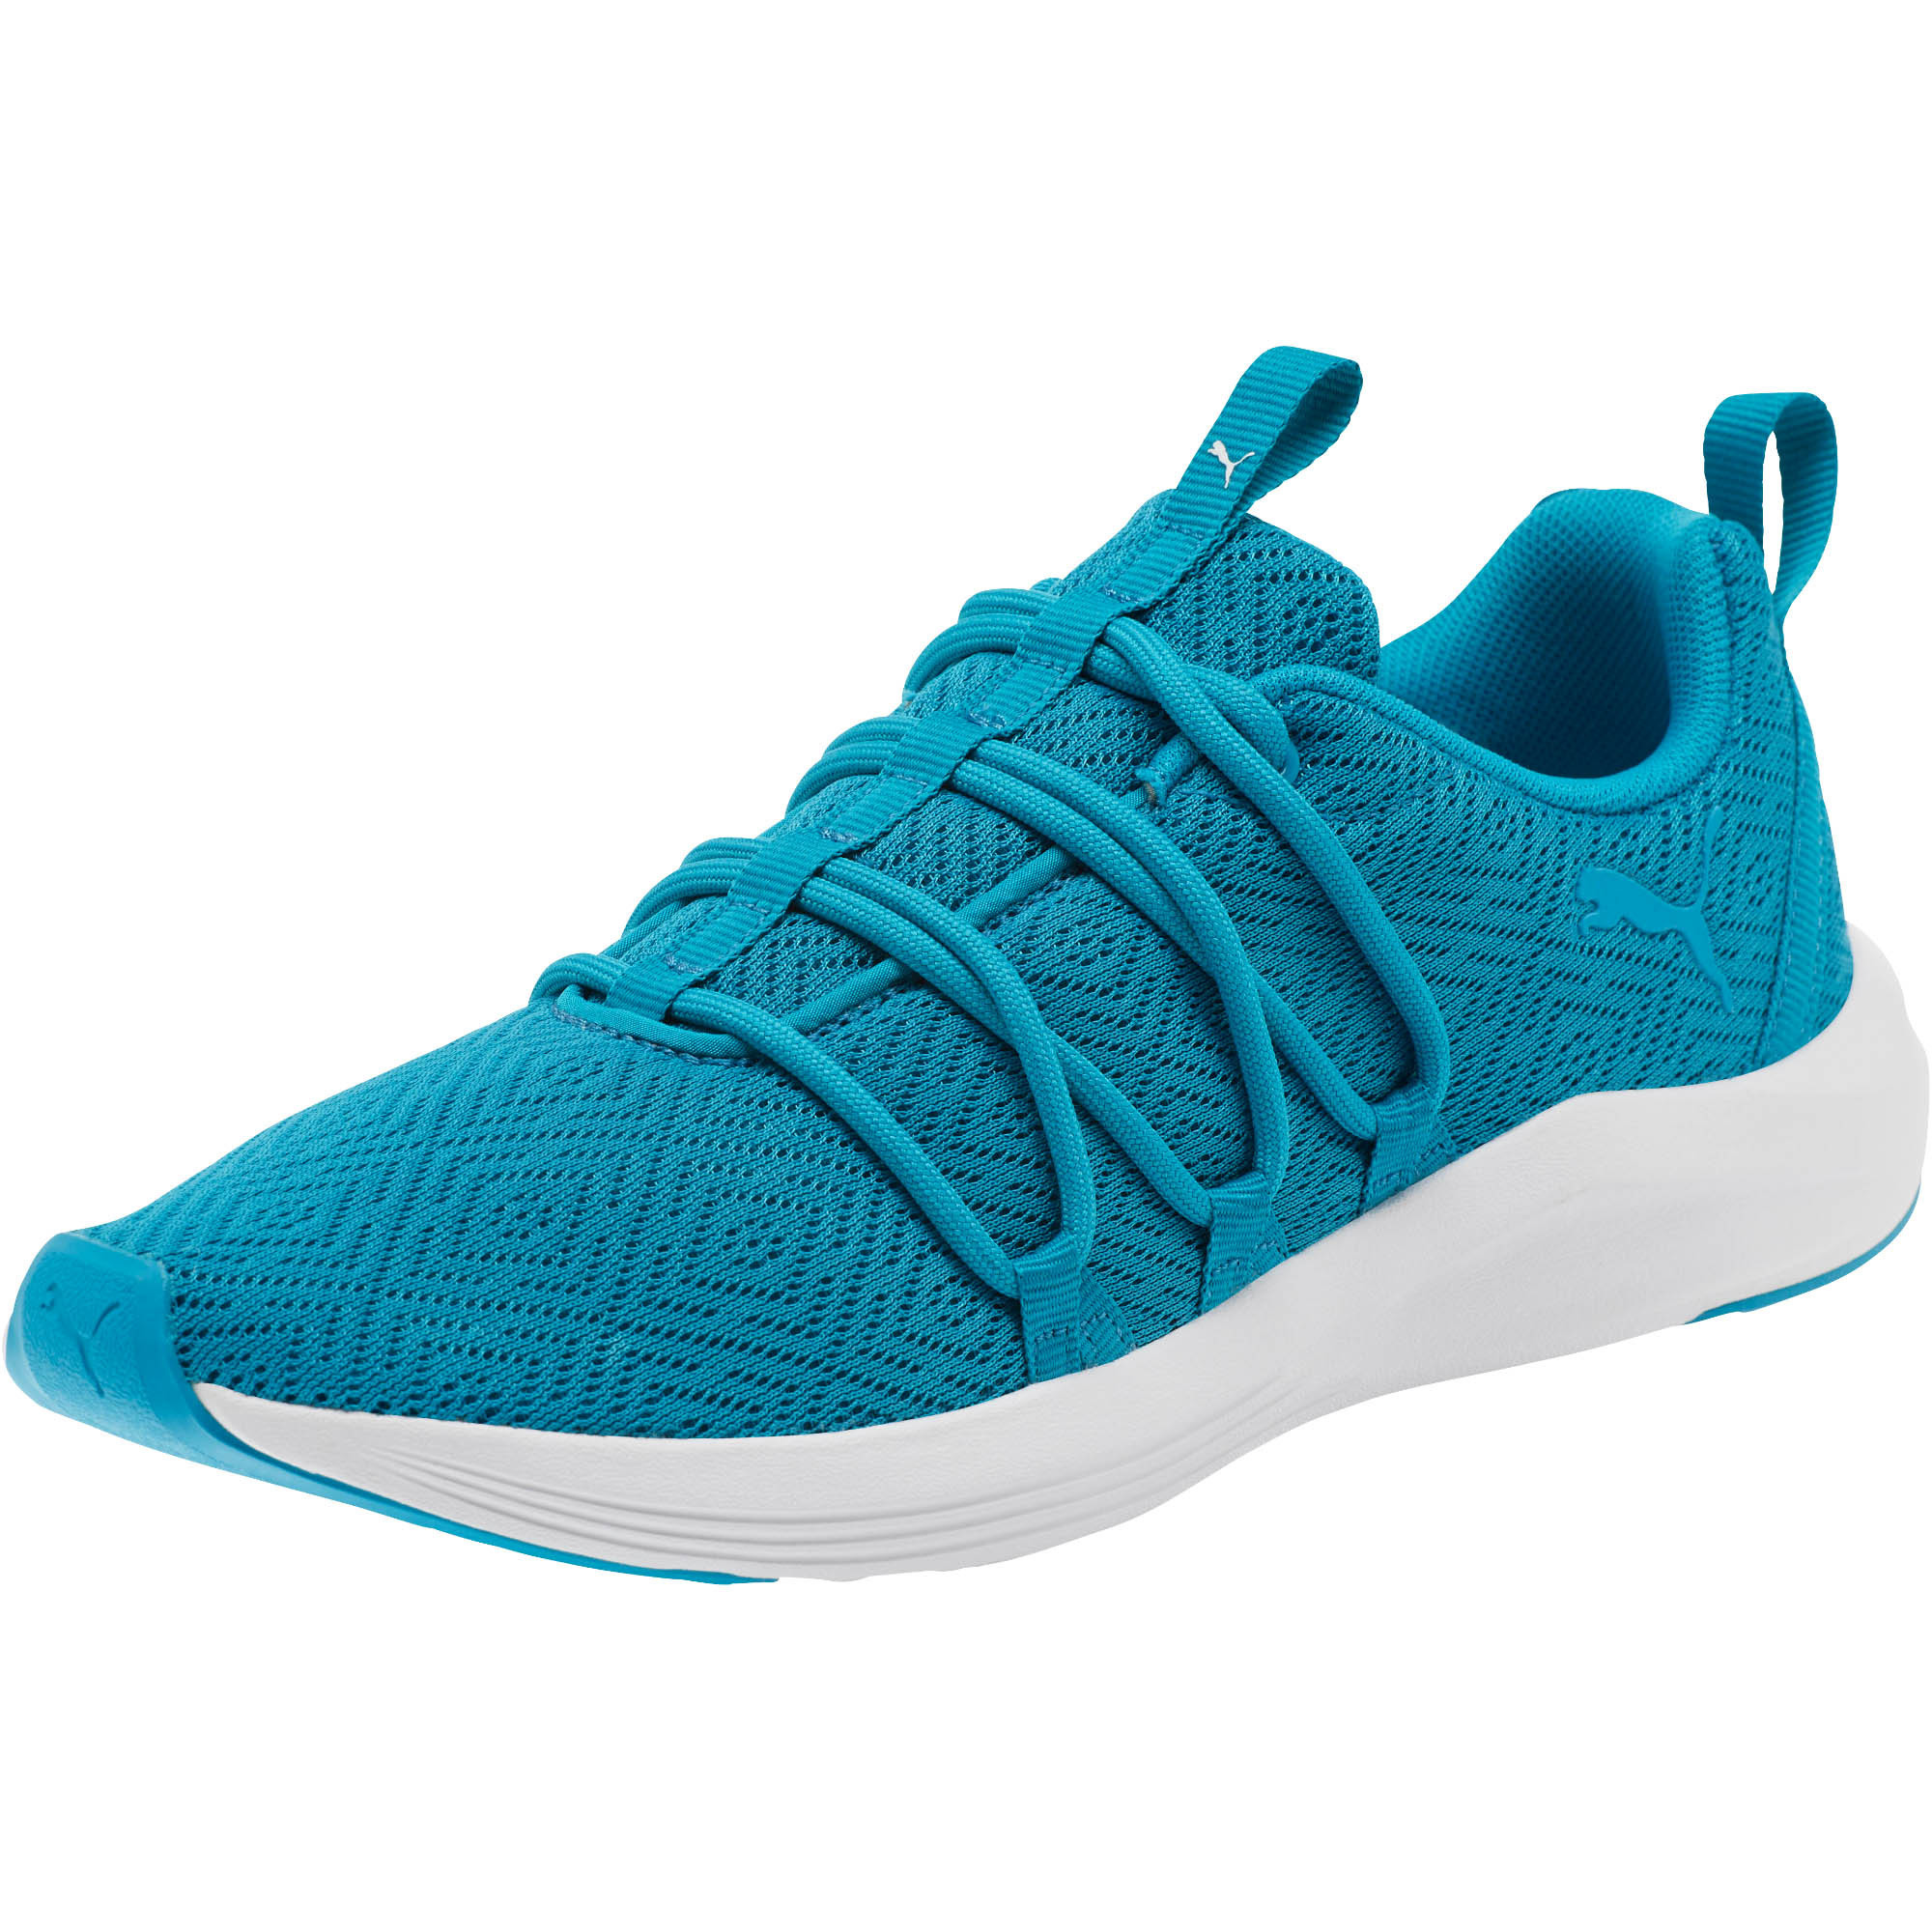 PUMA-Prowl-Alt-Stellar-Women-s-Training-Shoes-Women-Shoe-Training thumbnail 9